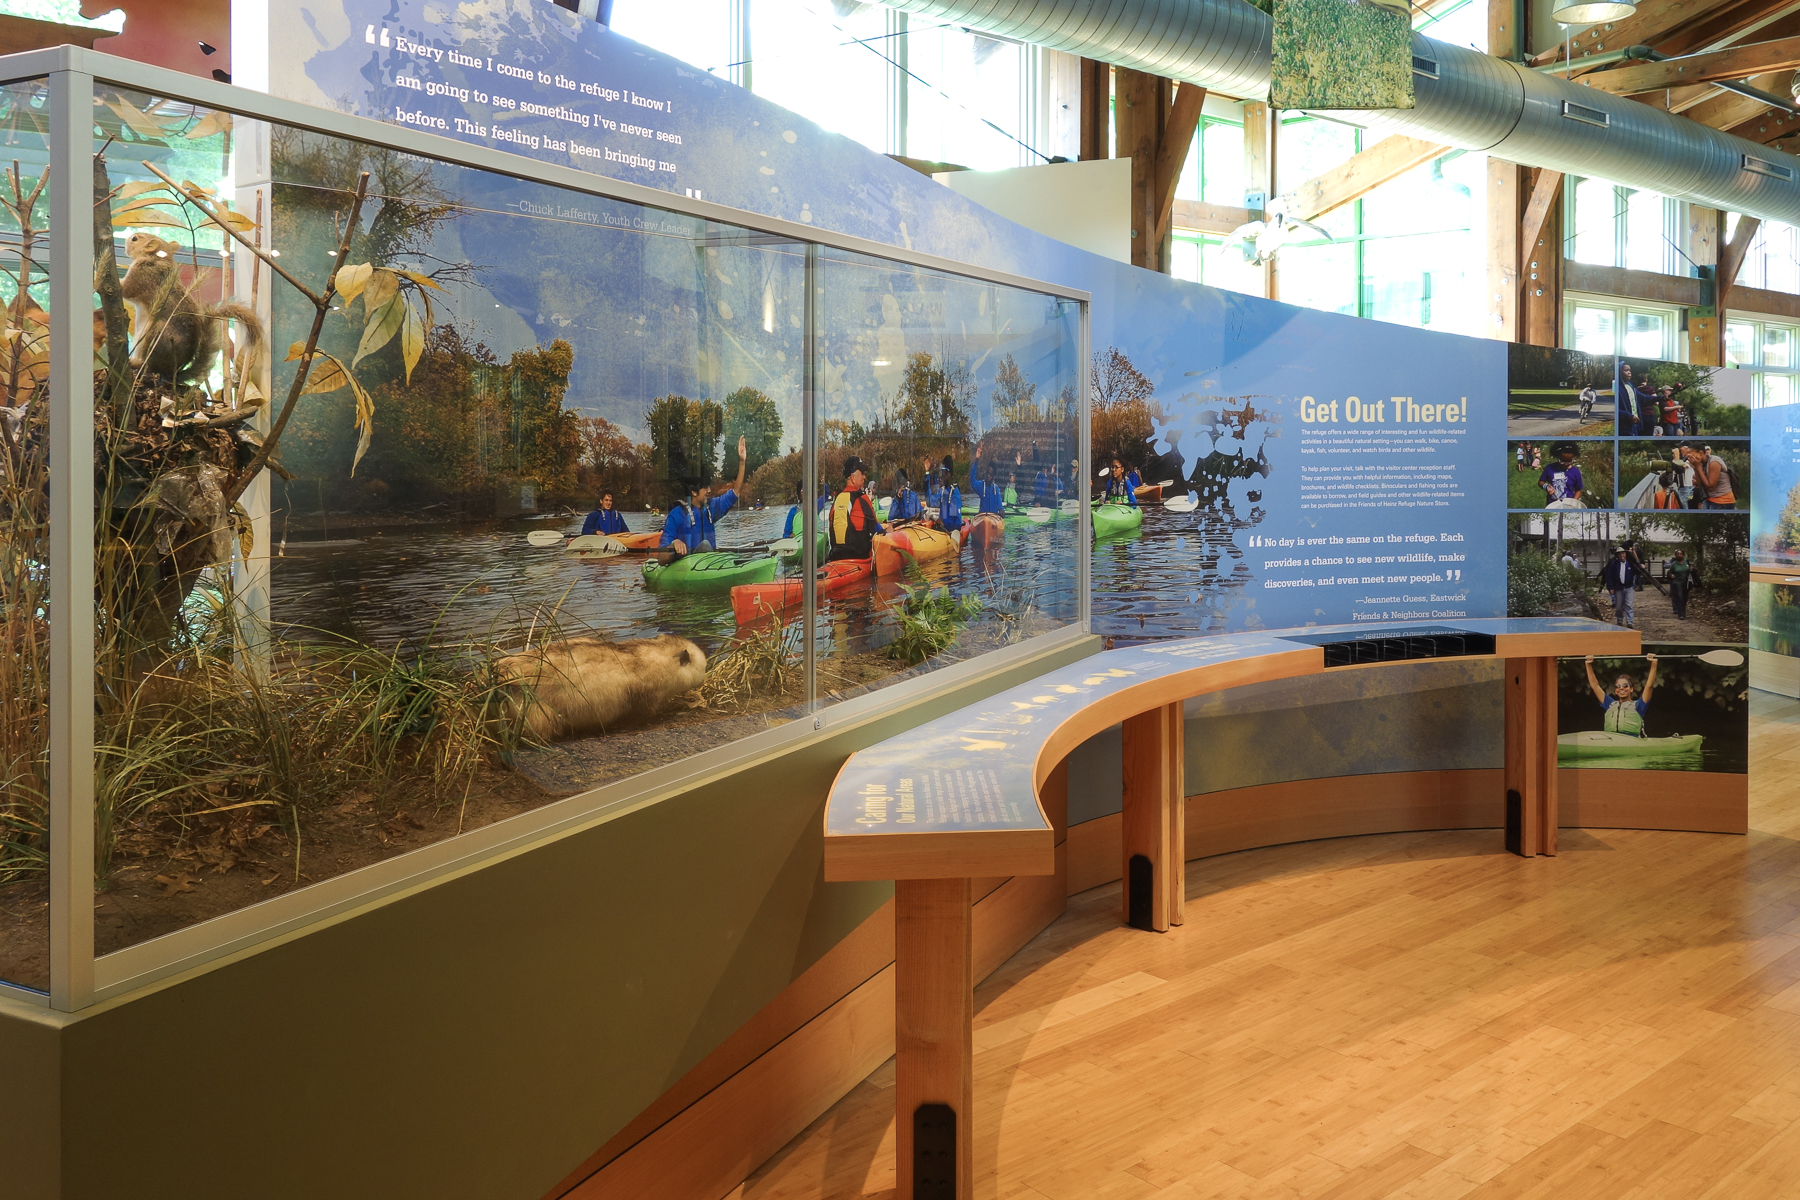 This faux wildlife display demonstrates how visitors can experience nature on the refuge.